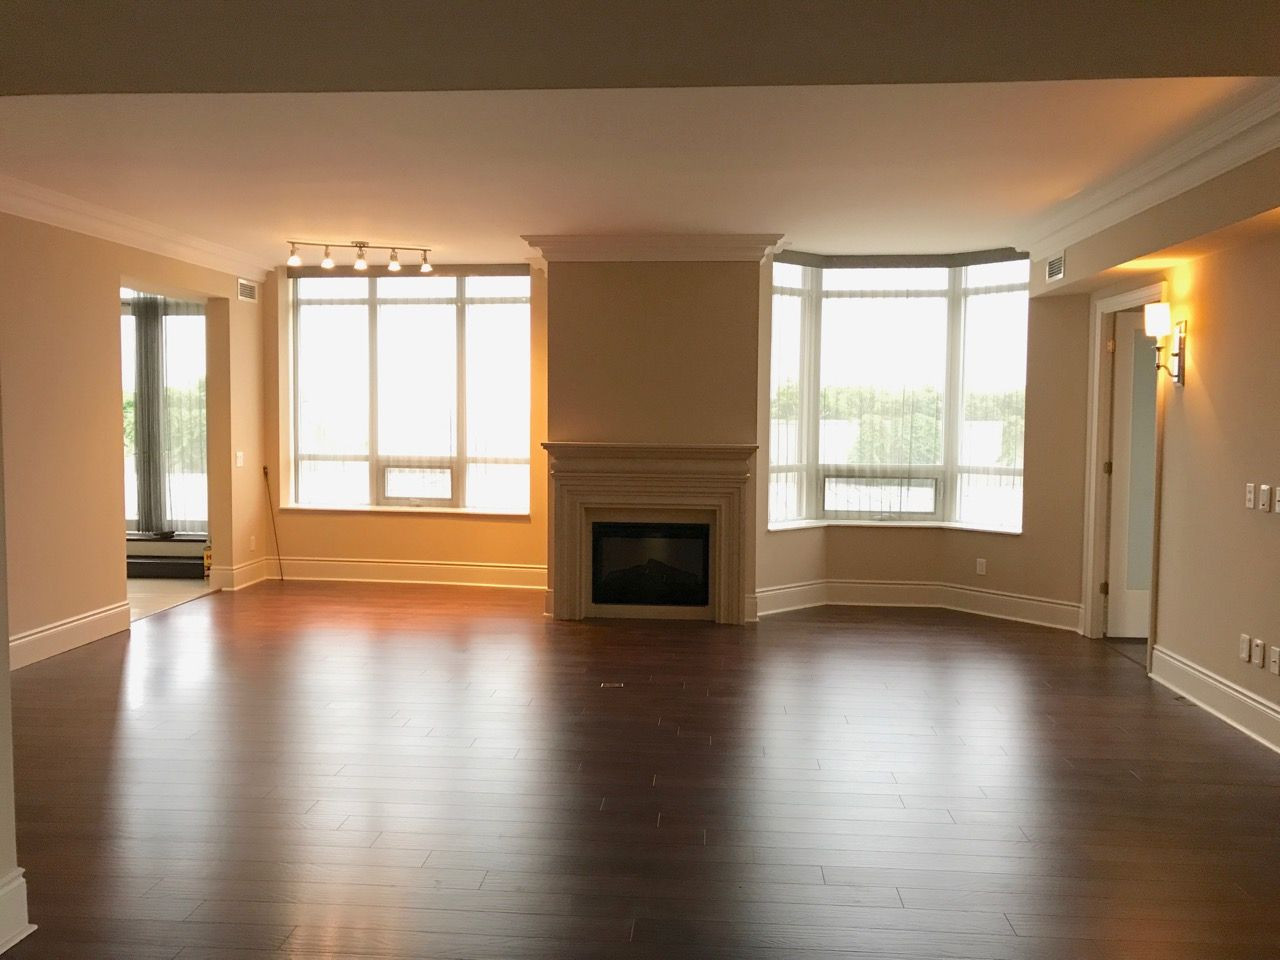 Hardwood Flooring Concord Nc Of 10101 Yonge St Suite 619 Available for Lease by Rosanne Agasee Intended for 10101 Yonge St Suite 619 Available for Lease by Rosanne Agasee Located In the Renaissance at Yonge and Major Mackenzie This Tridel Beauty is Graciously